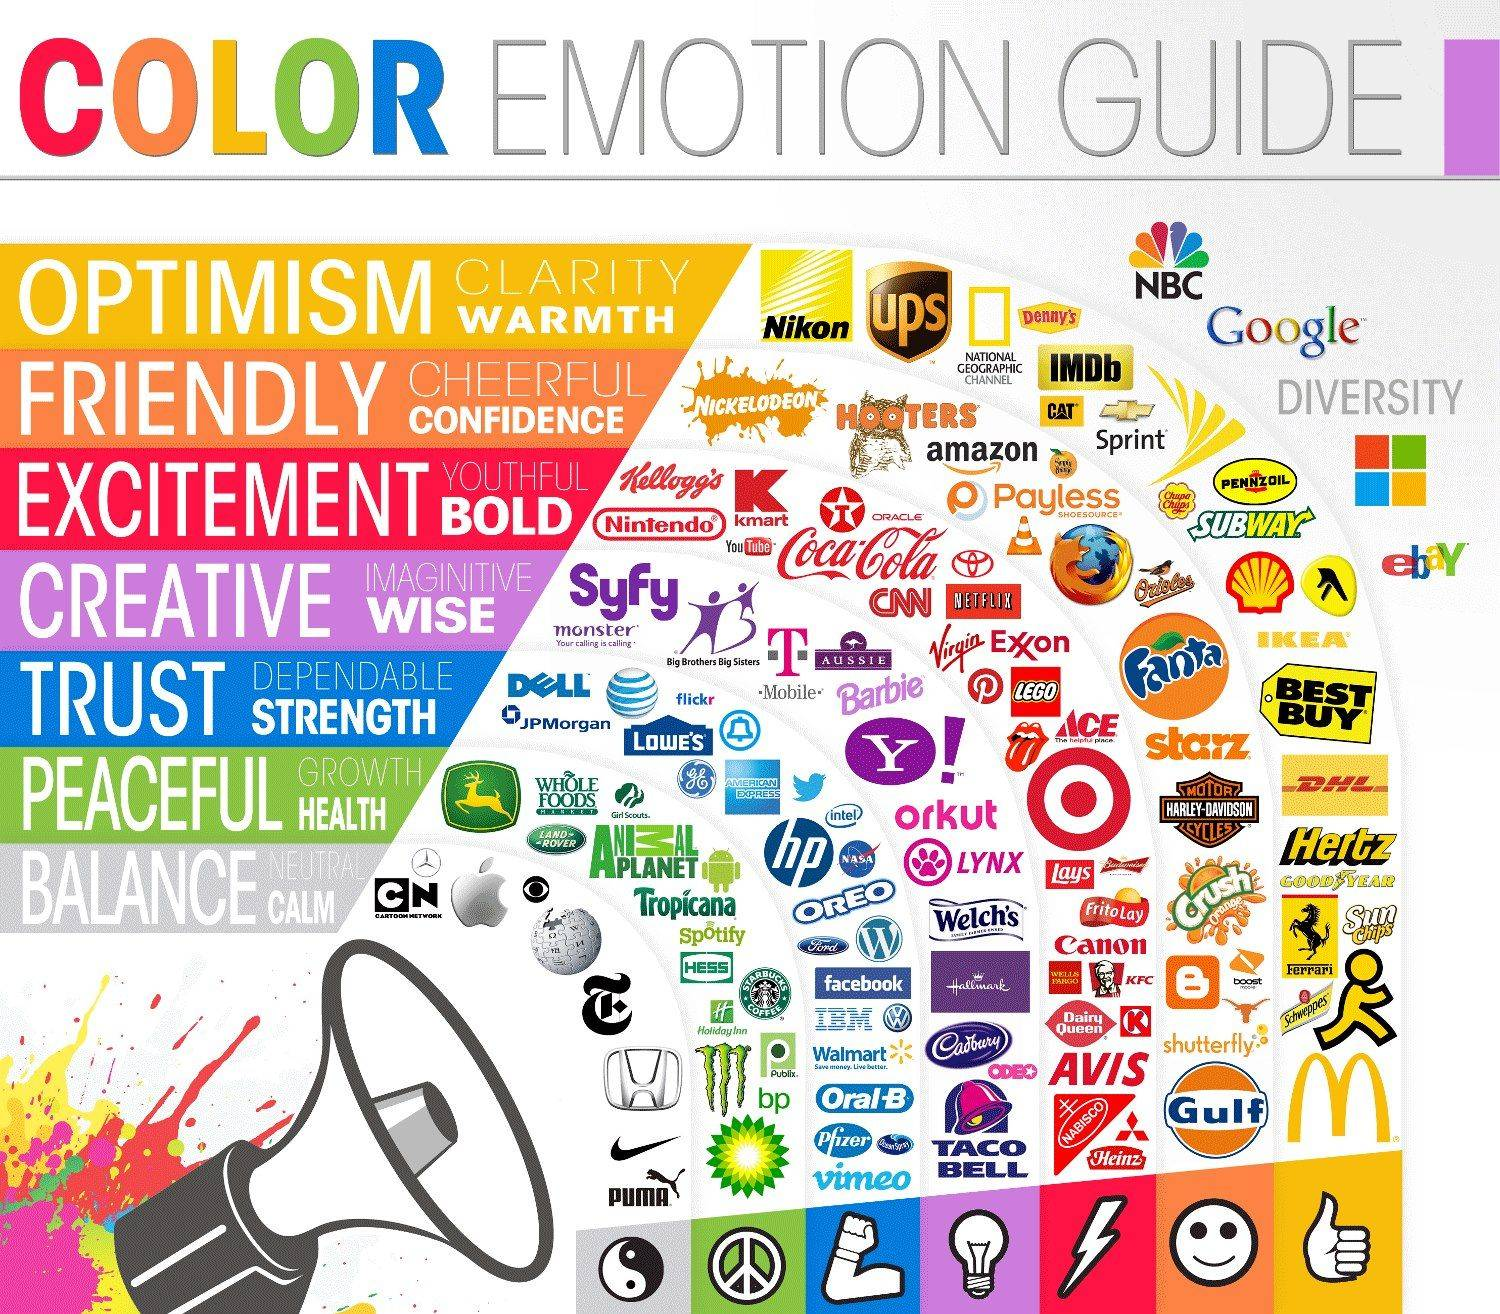 Color and Mood Beautiful Marketing Logos Brands Color Emotion Guide